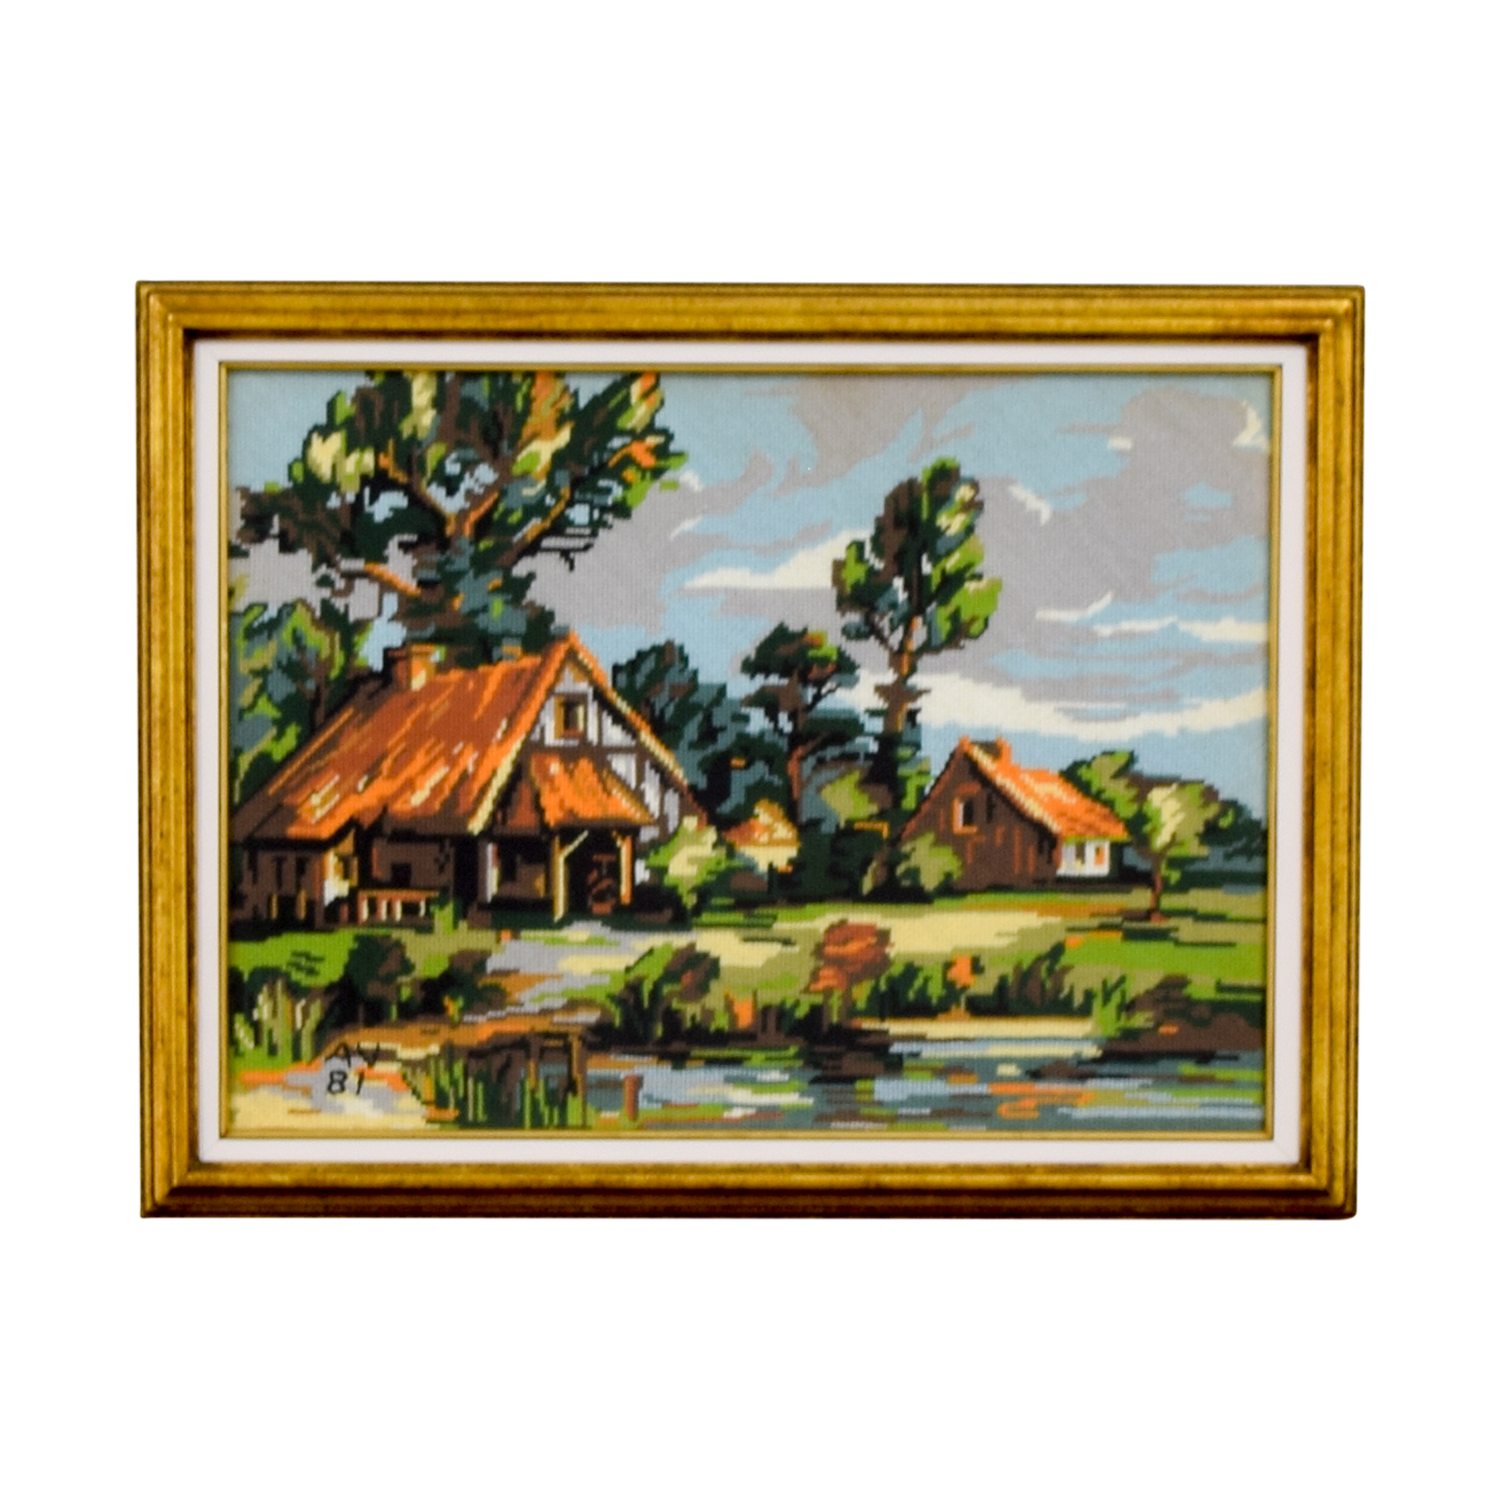 Framed Scenic Cottage Lake Needlepoint Decor